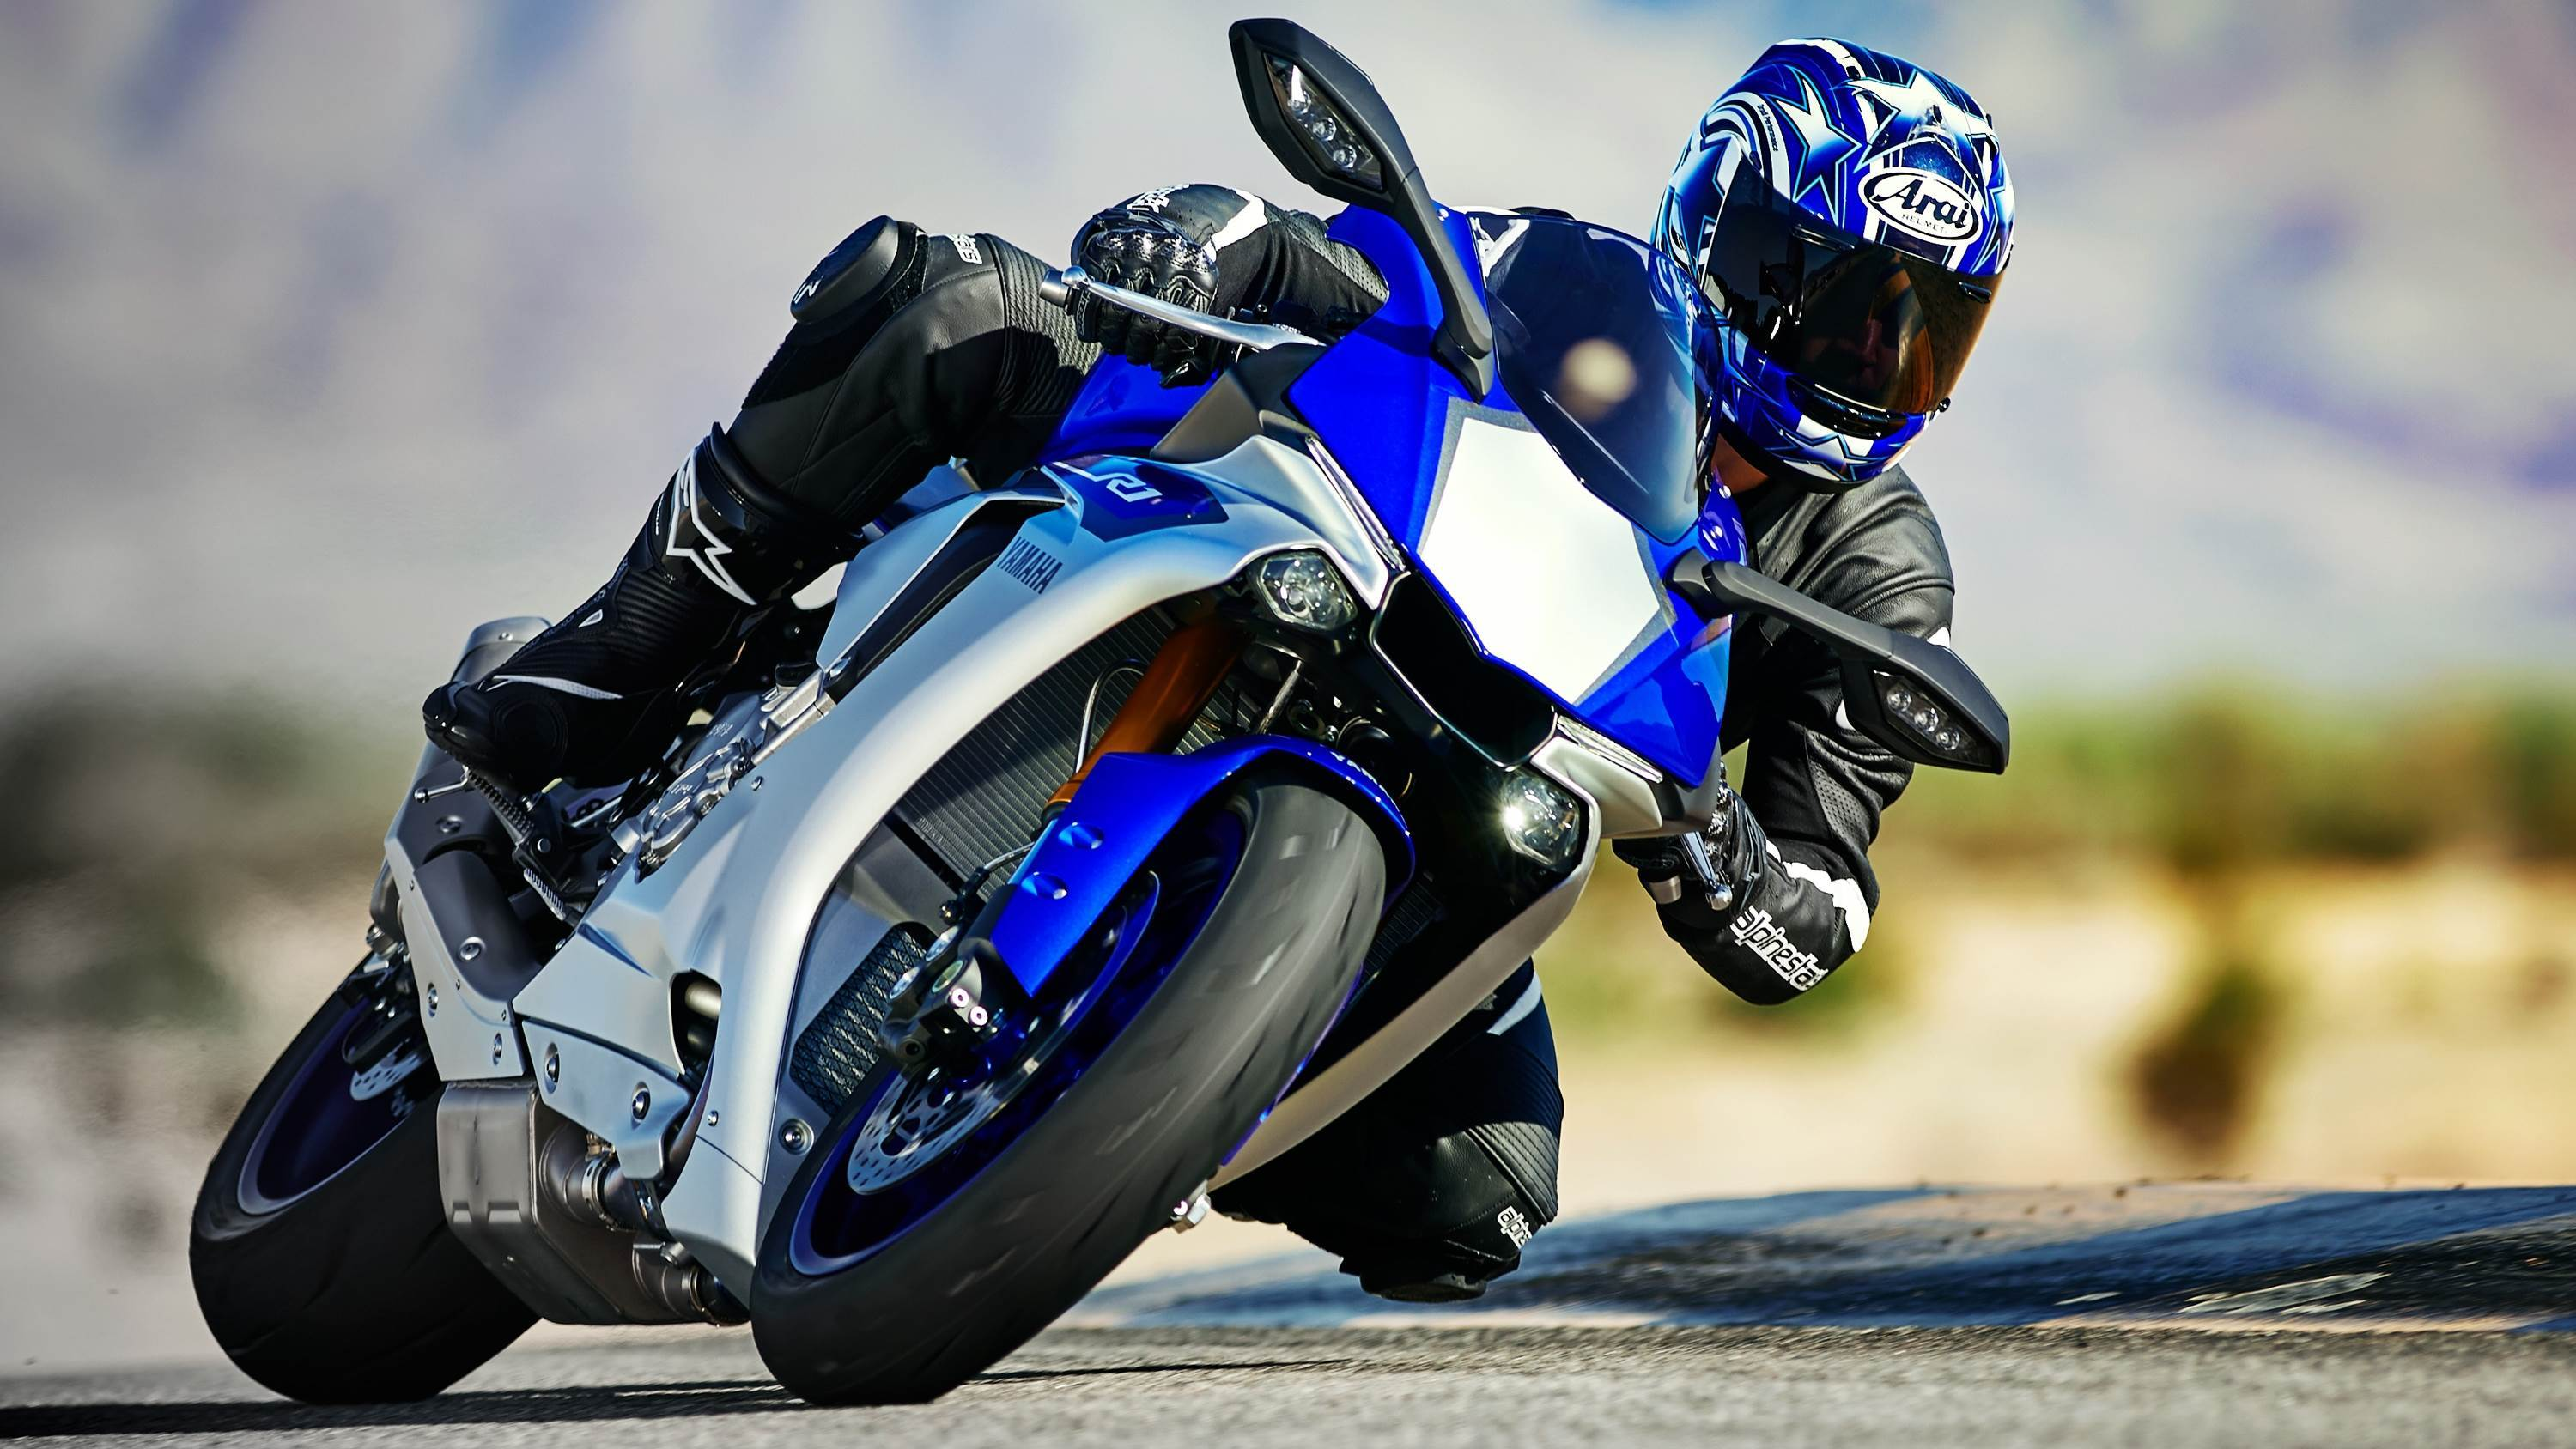 Yamaha Wallpaper 2015 Yamaha r1 hd Wallpaper